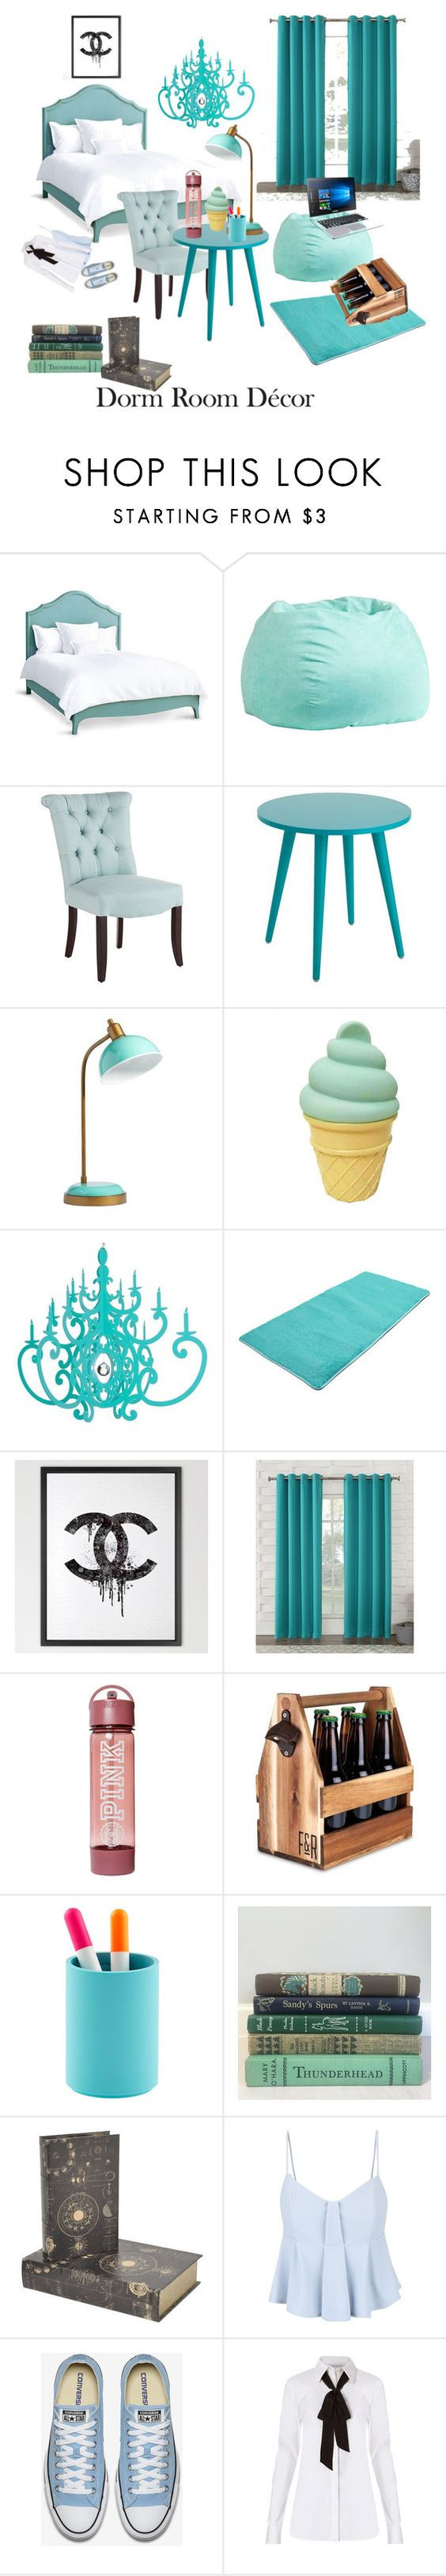 """Tiffany n co blue"" by tiffany2016t ❤ liked on Polyvore featuring interior, interiors, interior design, home, home decor, interior decorating, Redford House, PBteen, Pier 1 Imports and Chanel"